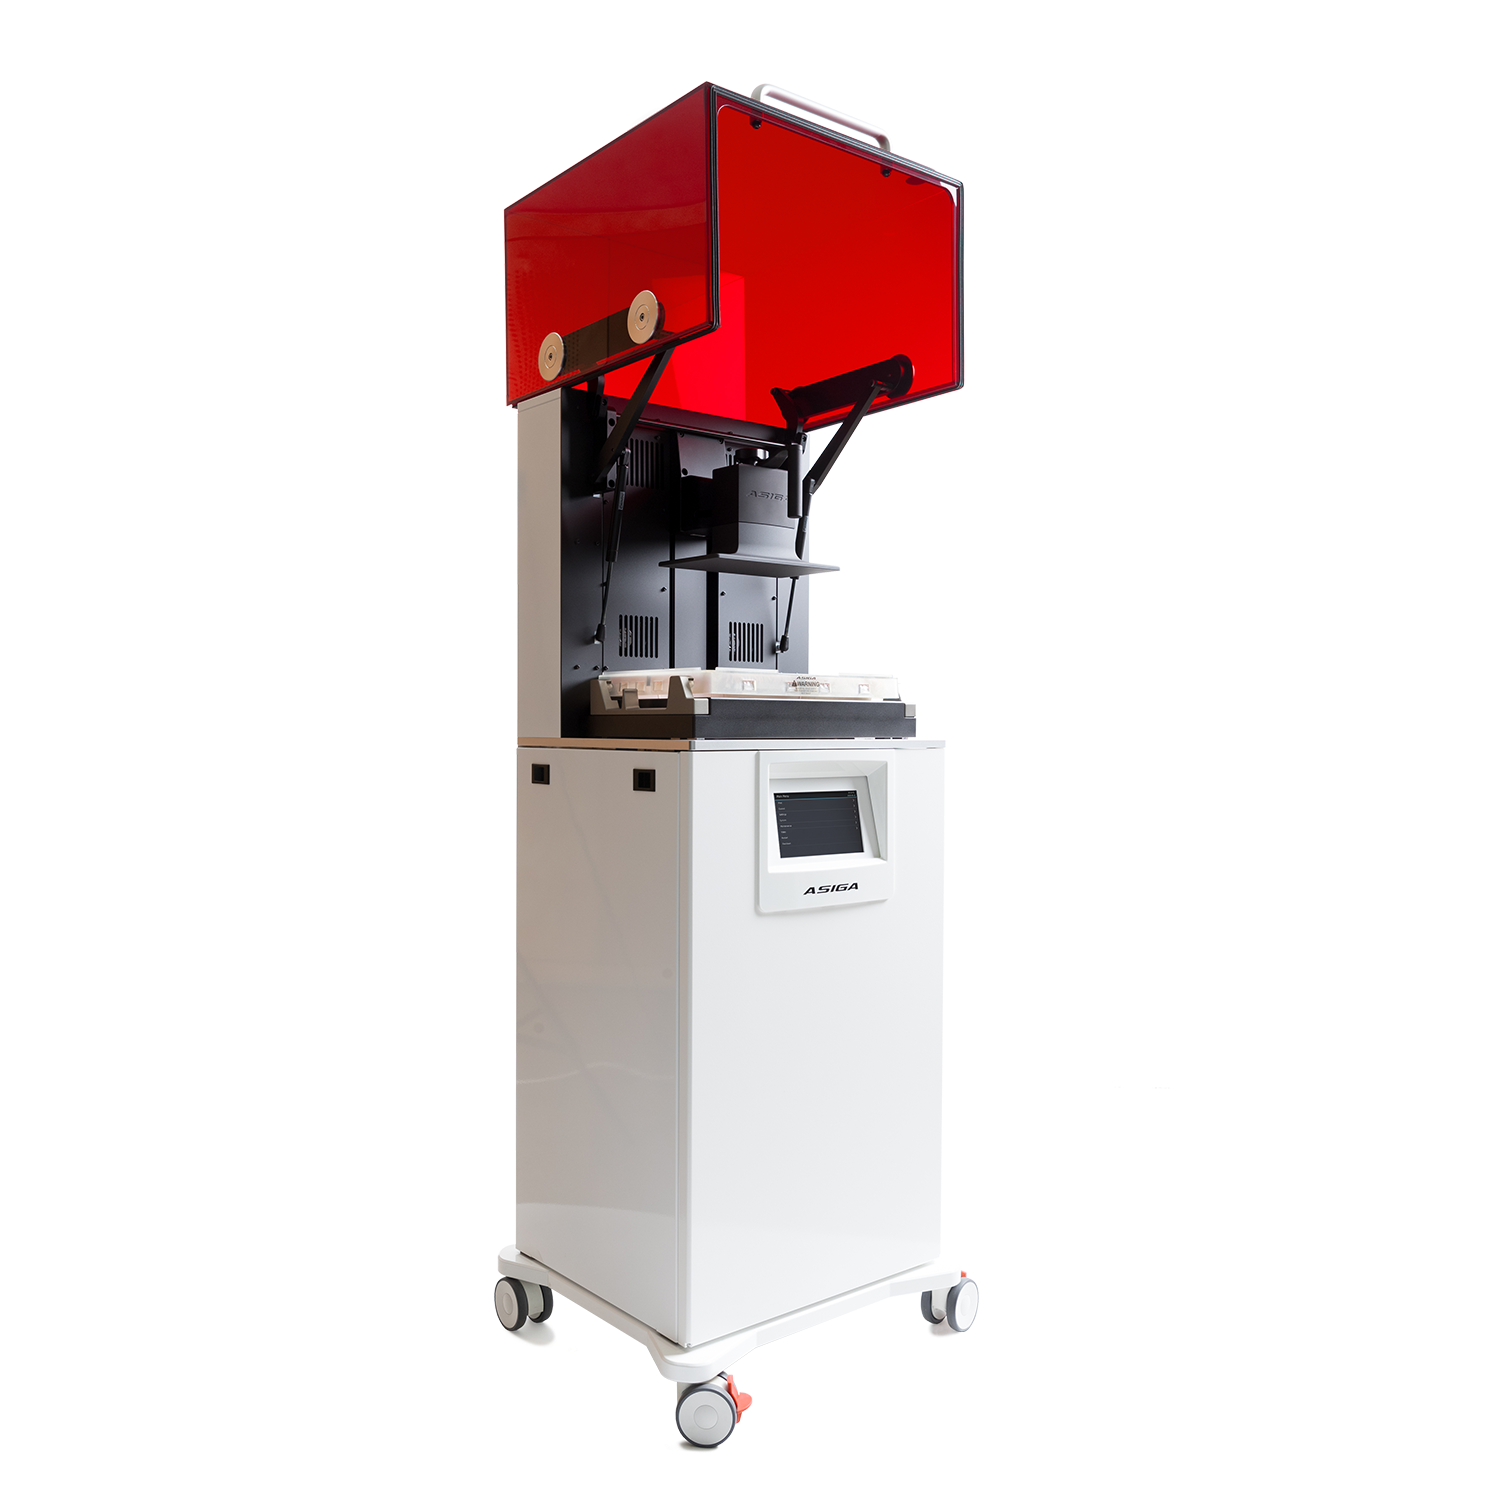 The new PRO 4K large format 3D printers from Asiga